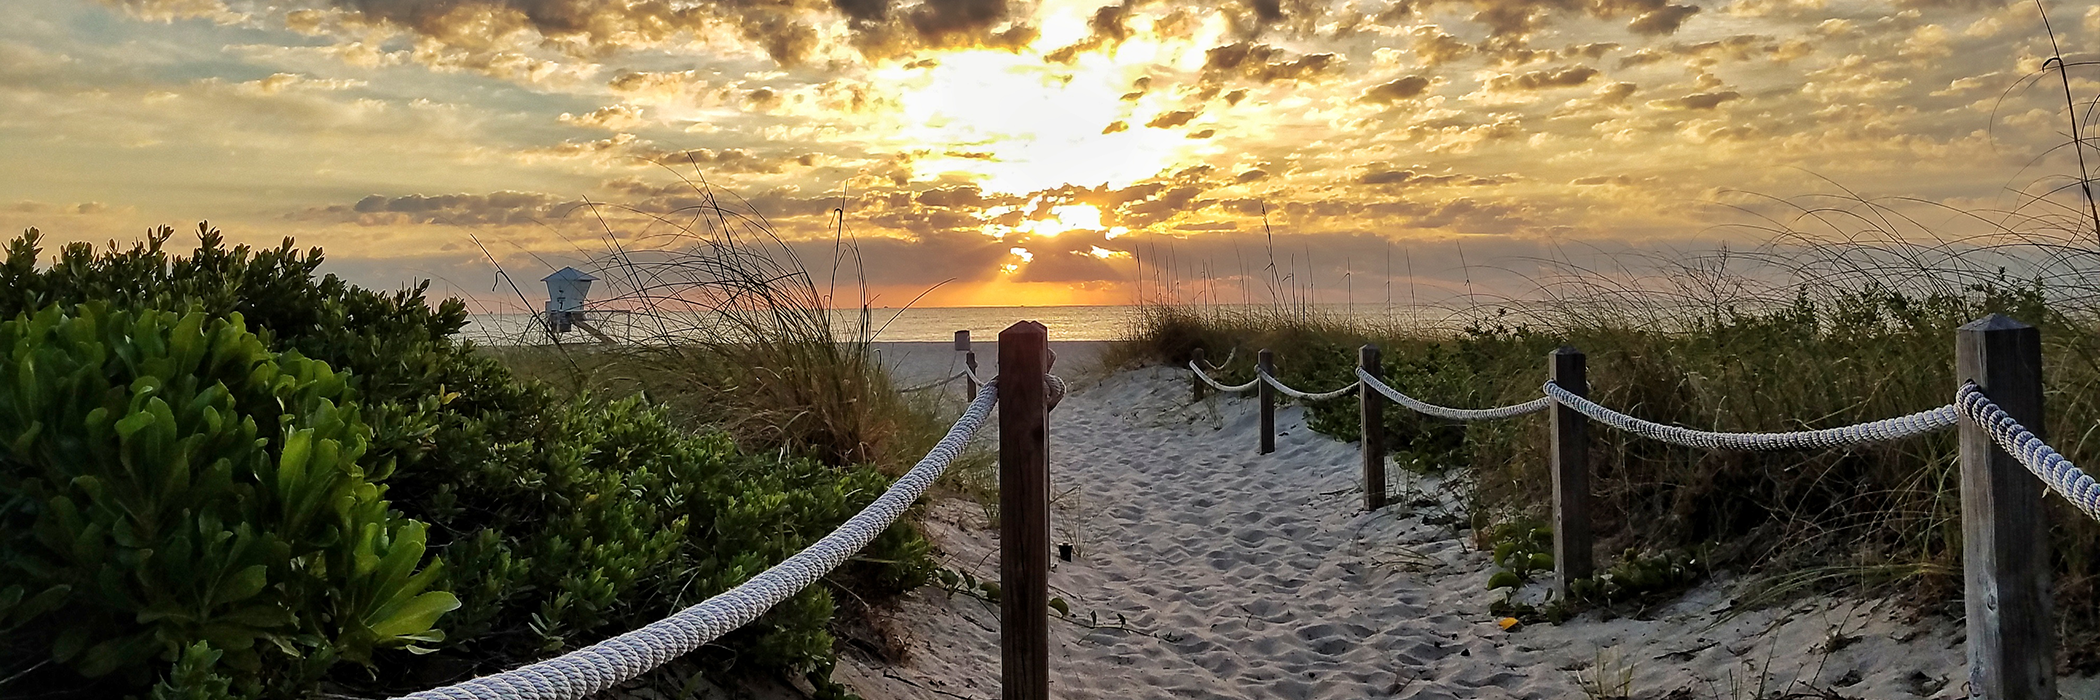 Beach Path In Sunset